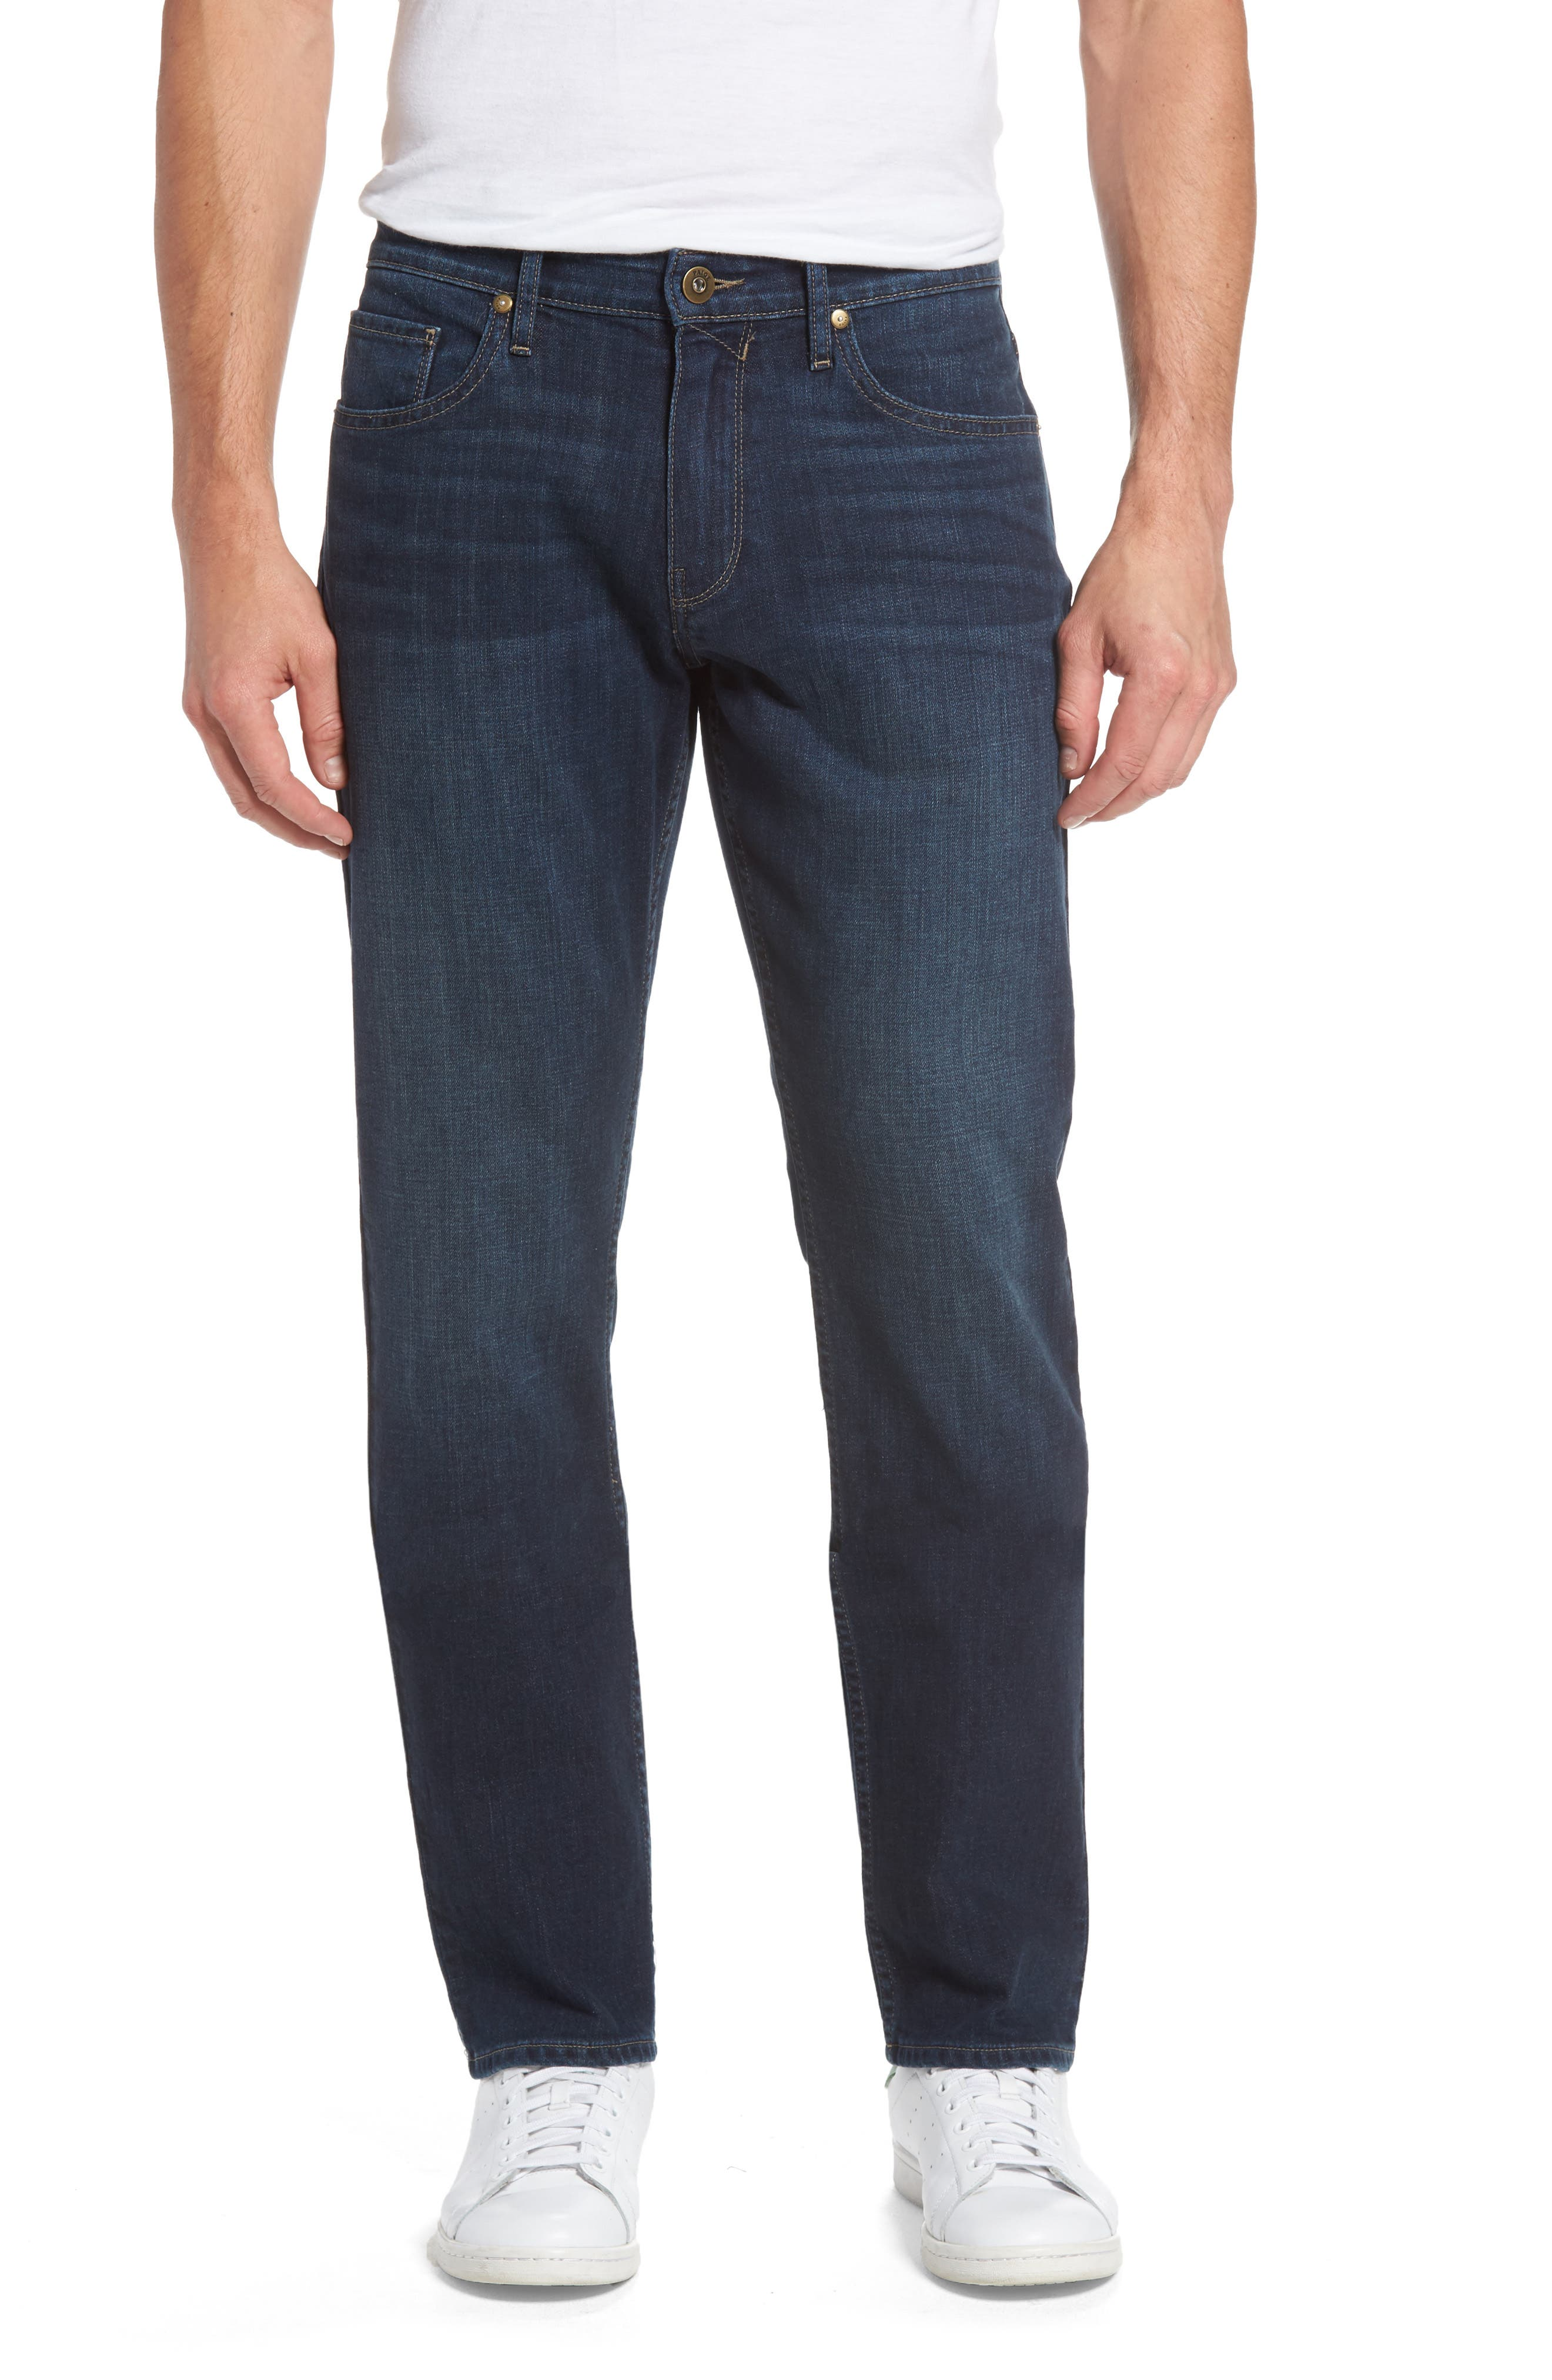 Alternate Image 1 Selected - PAIGE Federal Slim Straight Leg Jeans (Arnold)